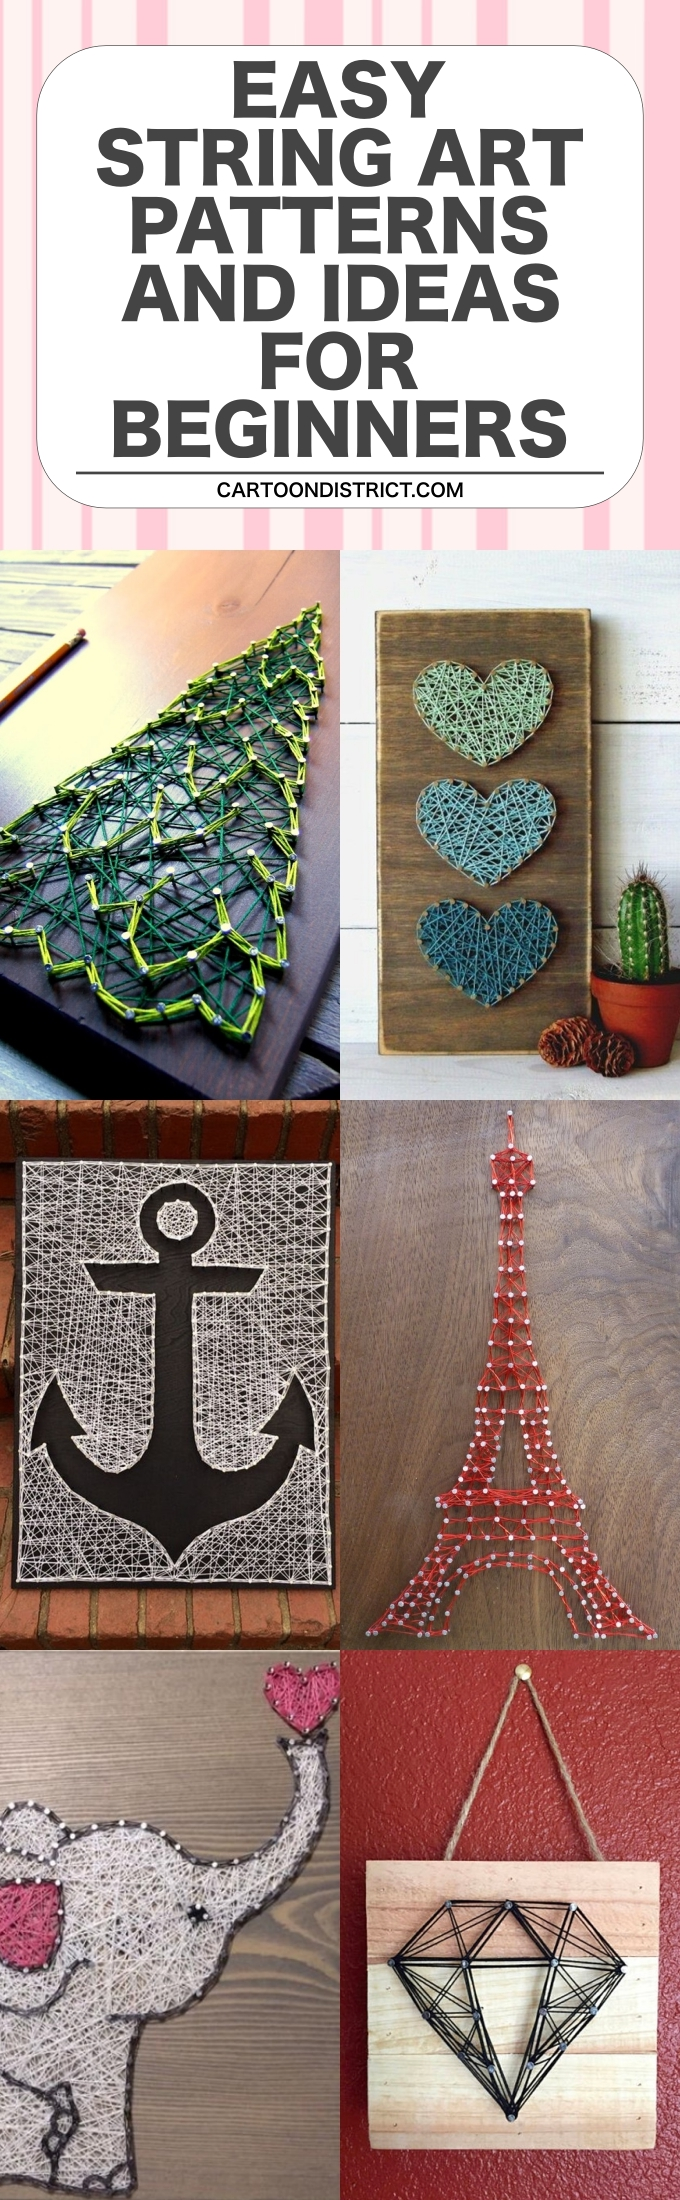 Easy String Art Patterns and Ideas for Beginners